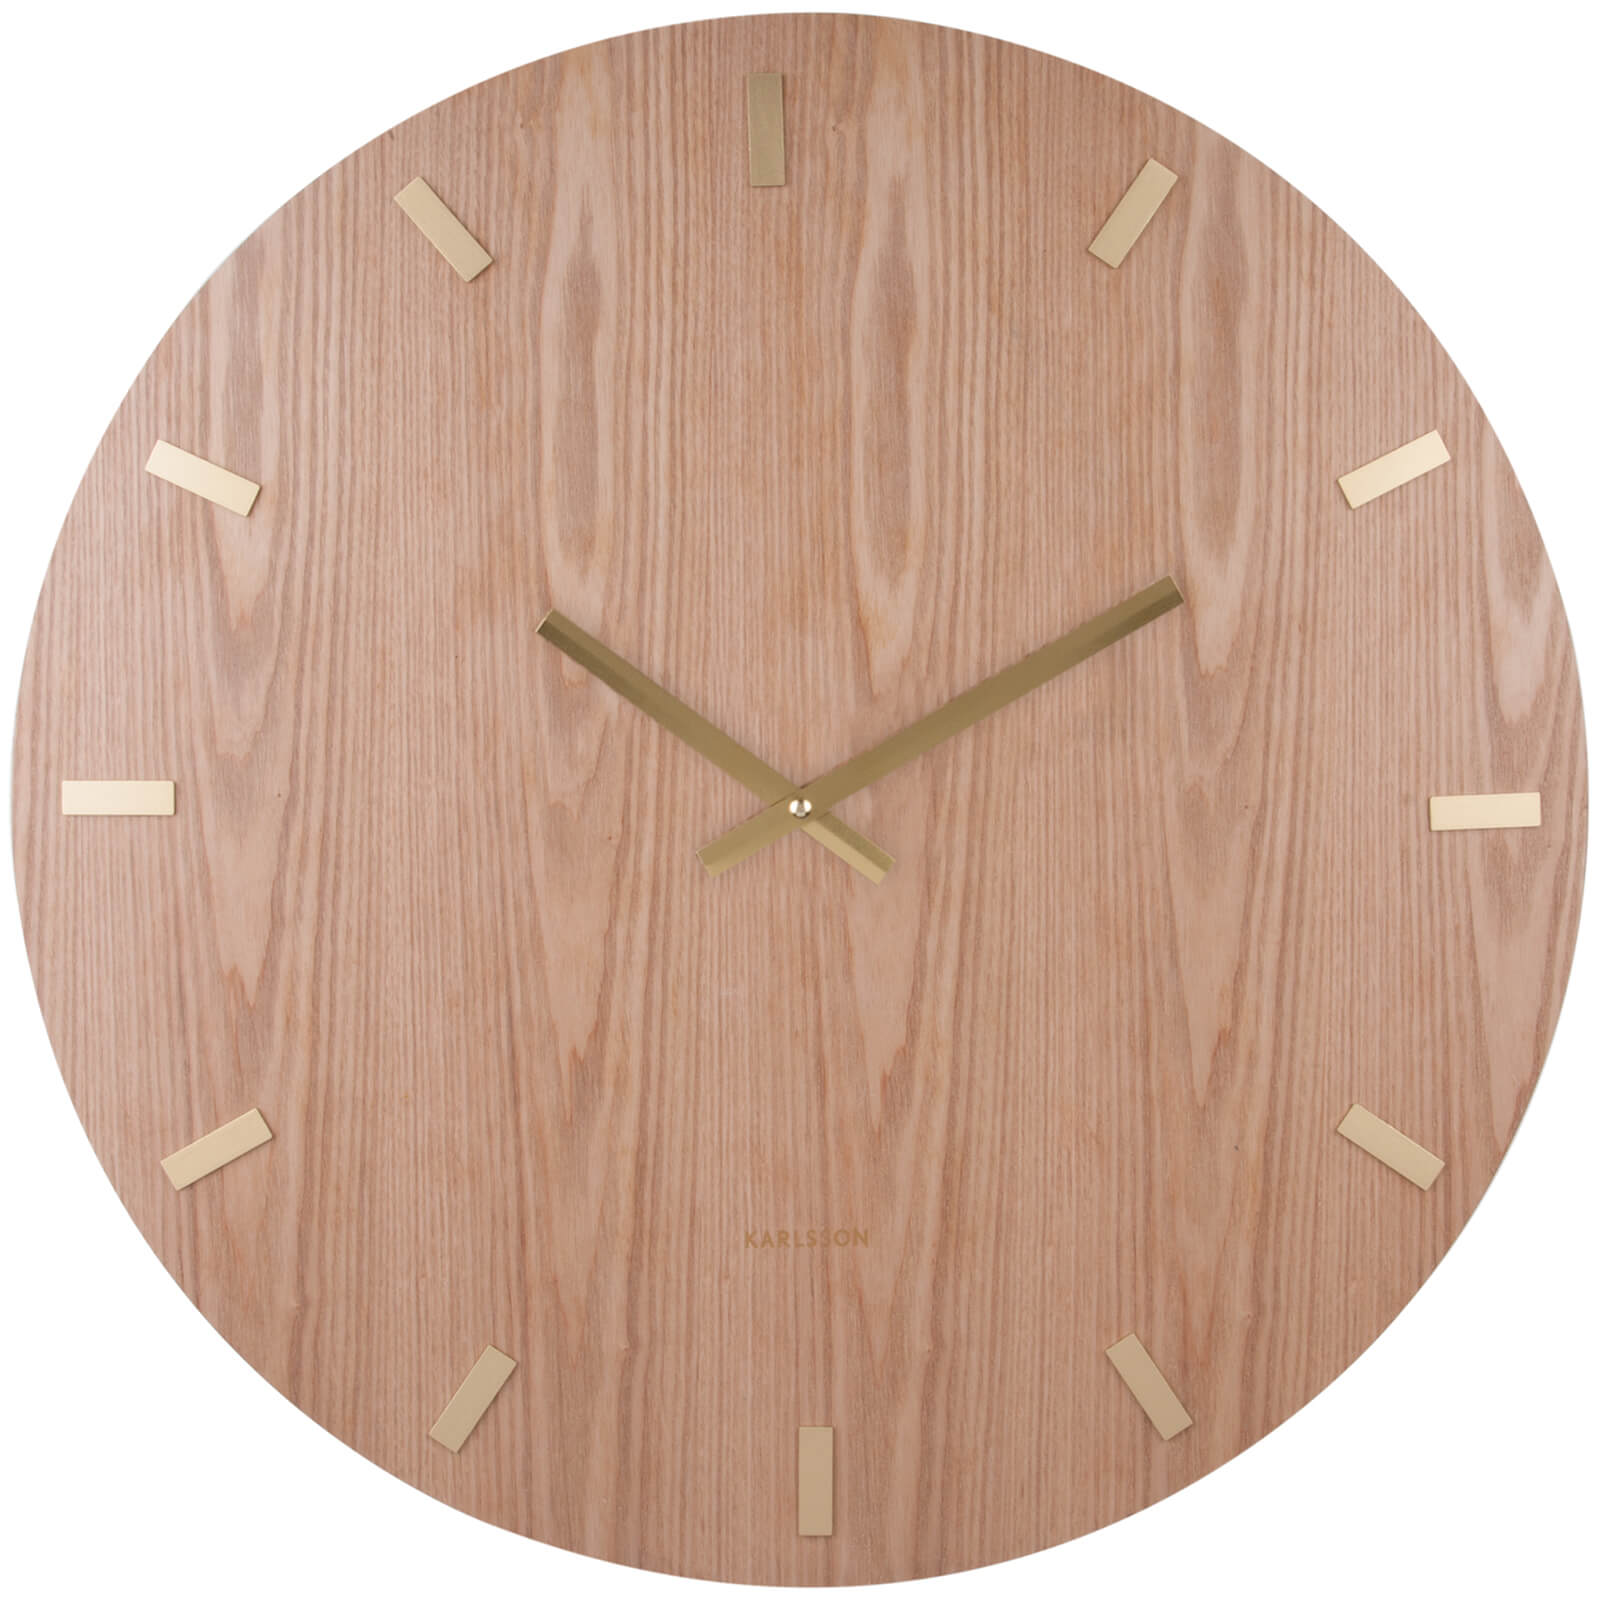 Karlsson Wood XL Wall Clock - Light Wood